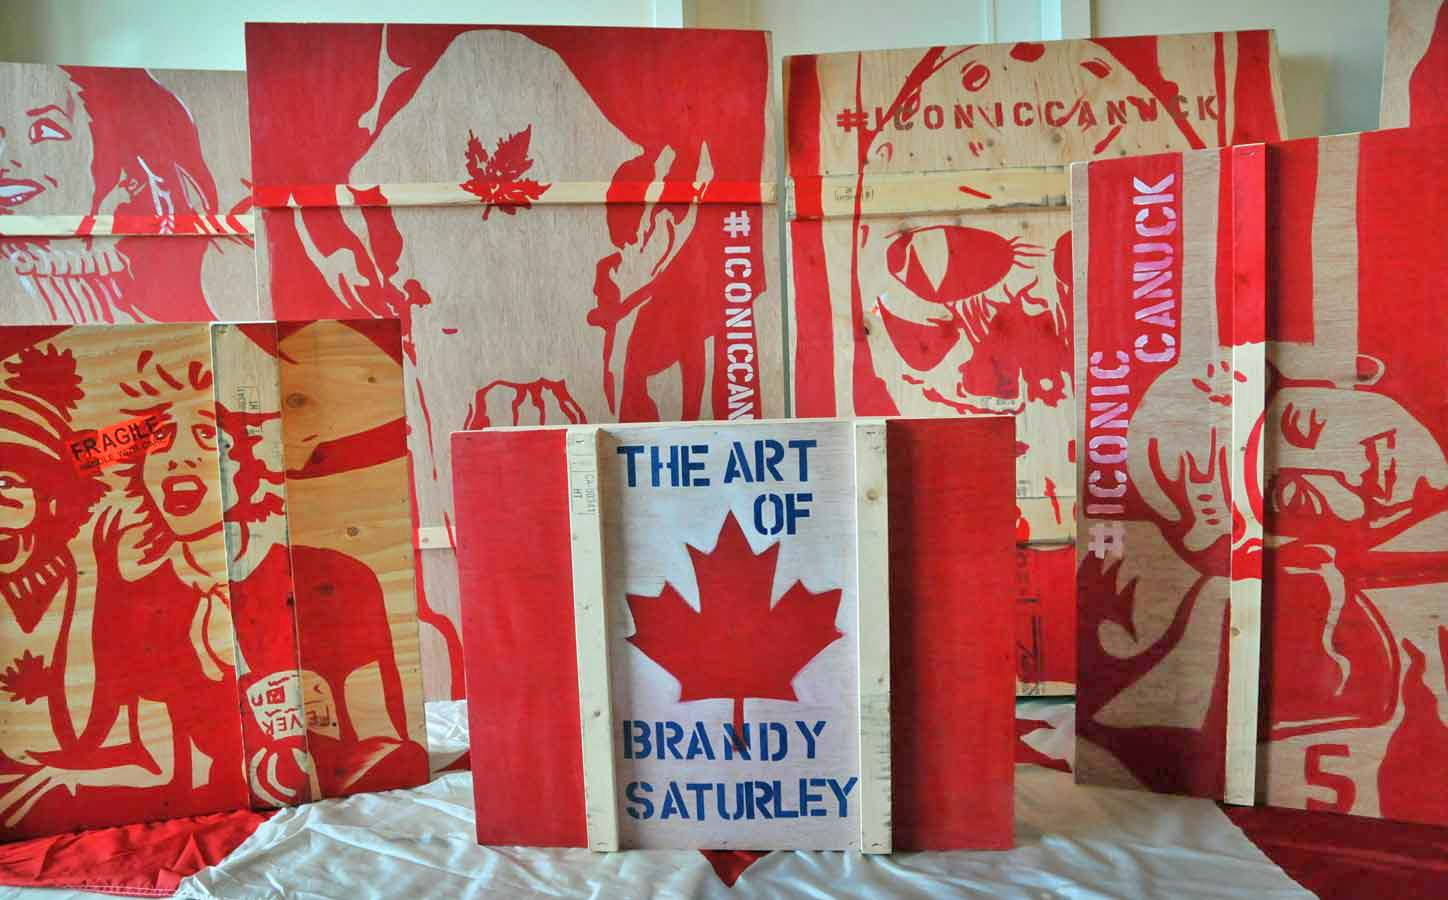 #iconiccanuck crates by Canadian Painter Brandy Saturley